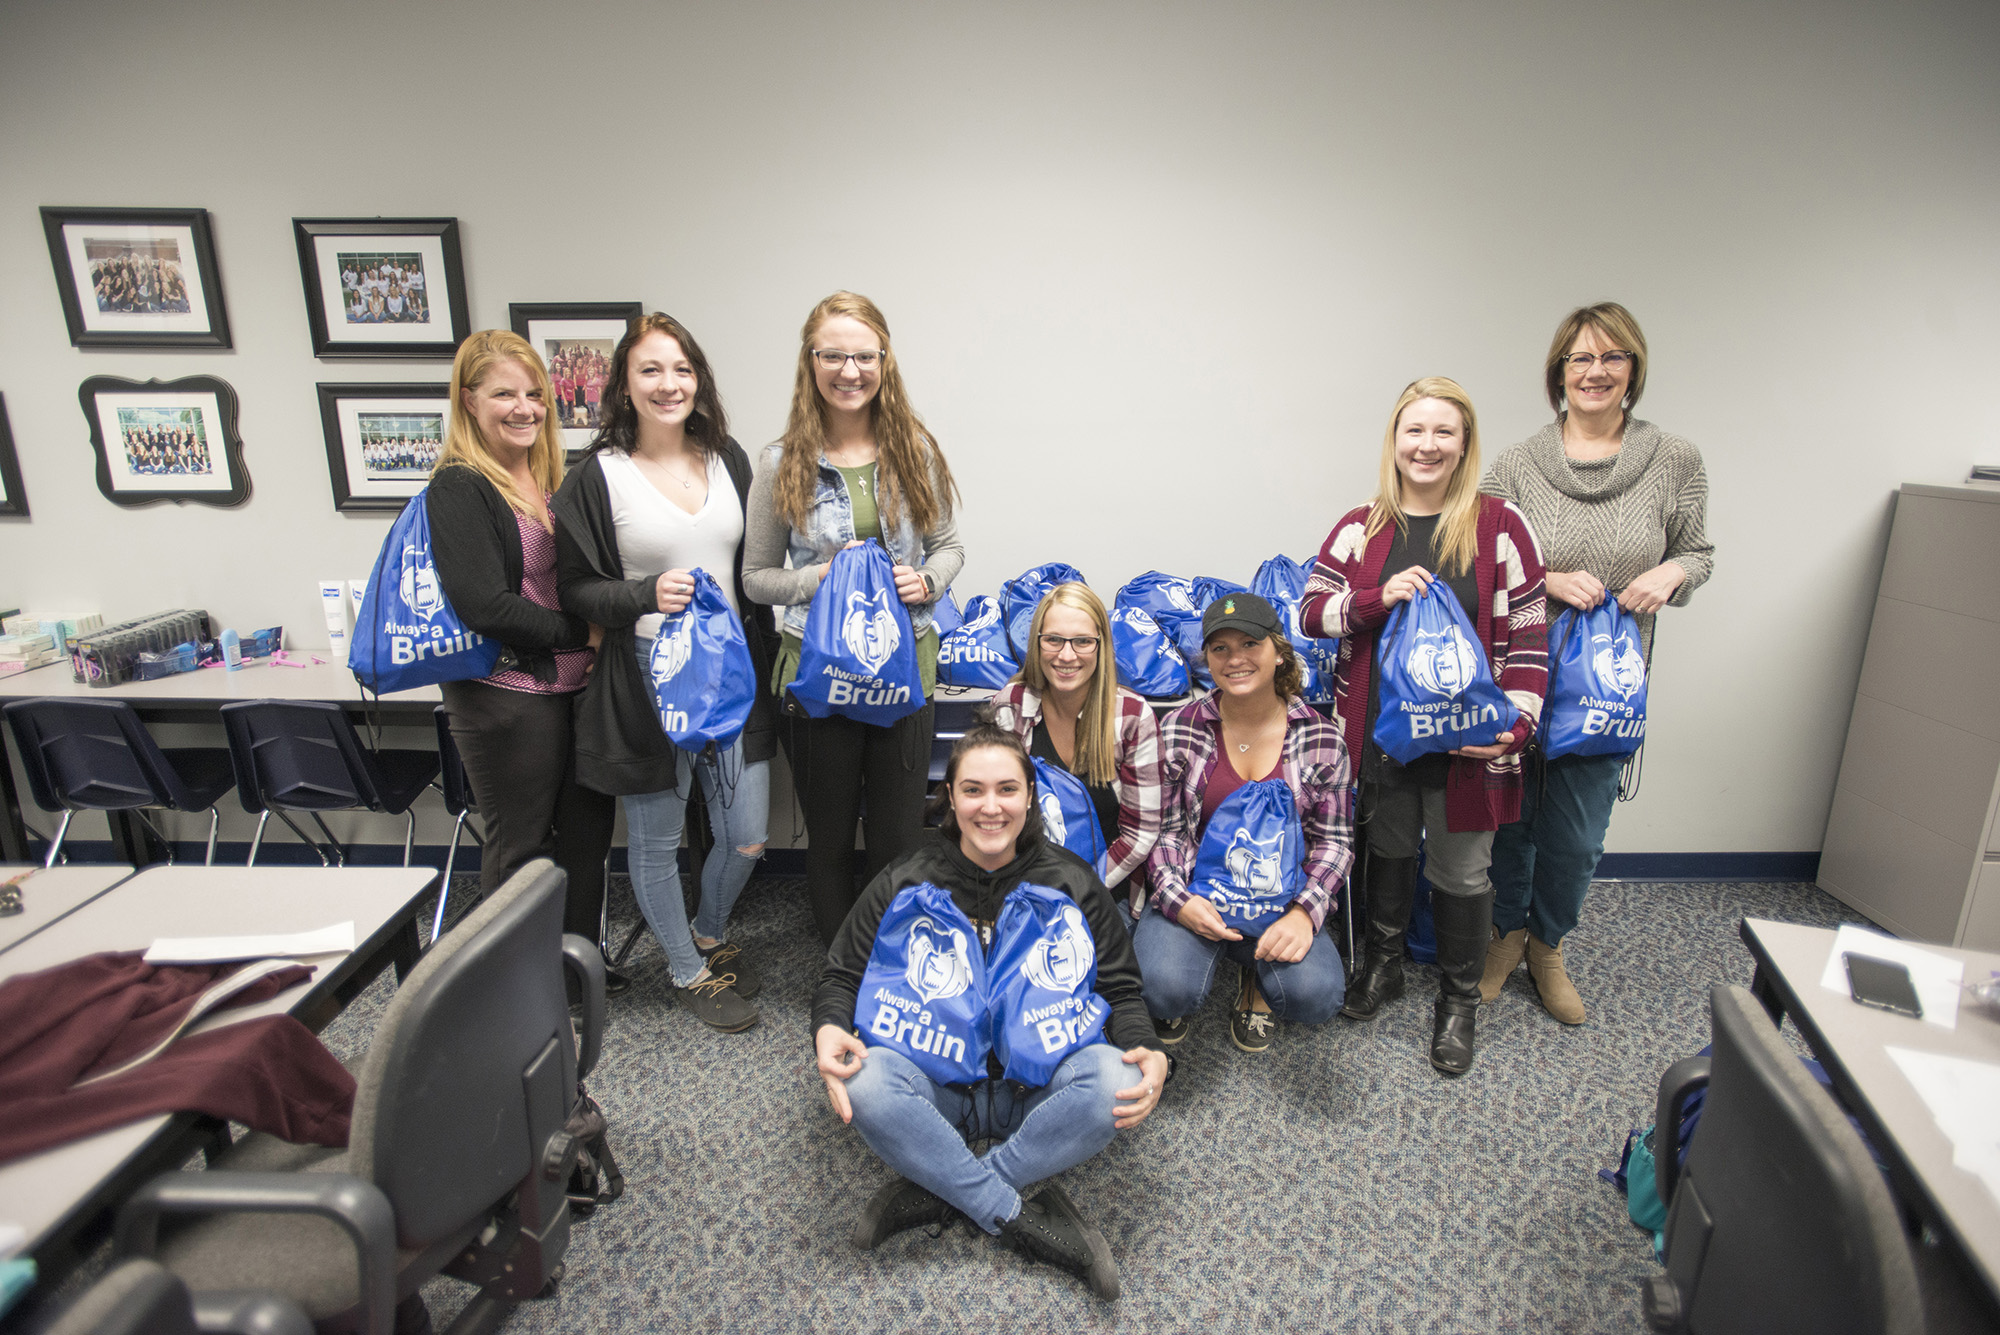 Dental Hygiene students and instructors pose with care packages they made for the homeless.